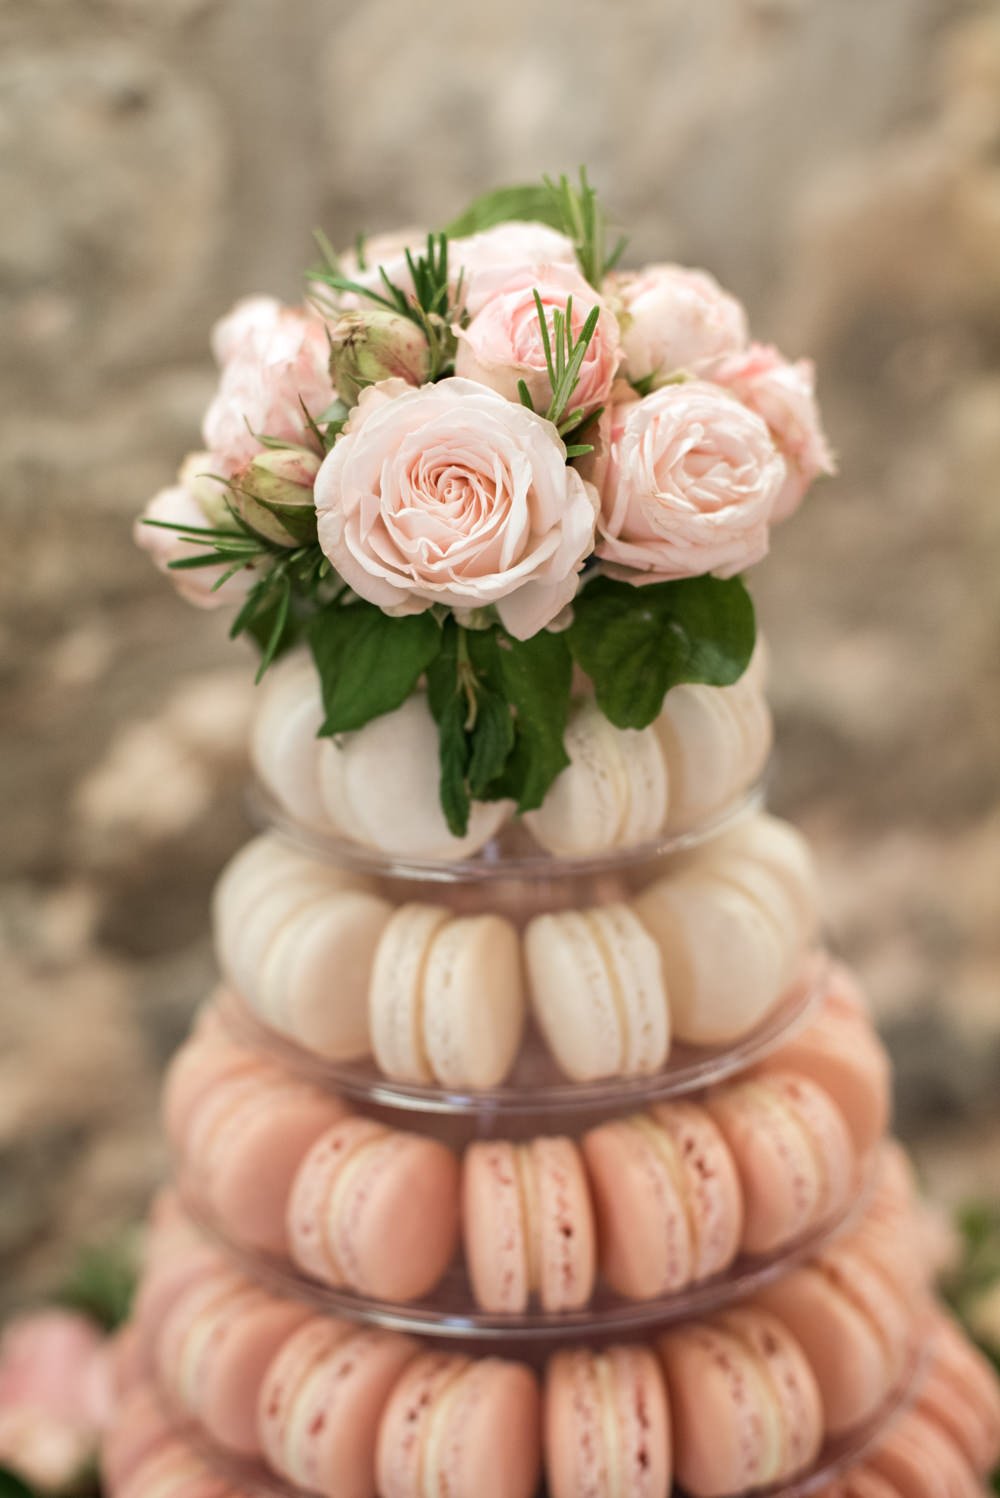 Pink Ombre Macaron Tower Cake Roses Tythe Barn Priston Mill Wedding Eleanor Jane Photography